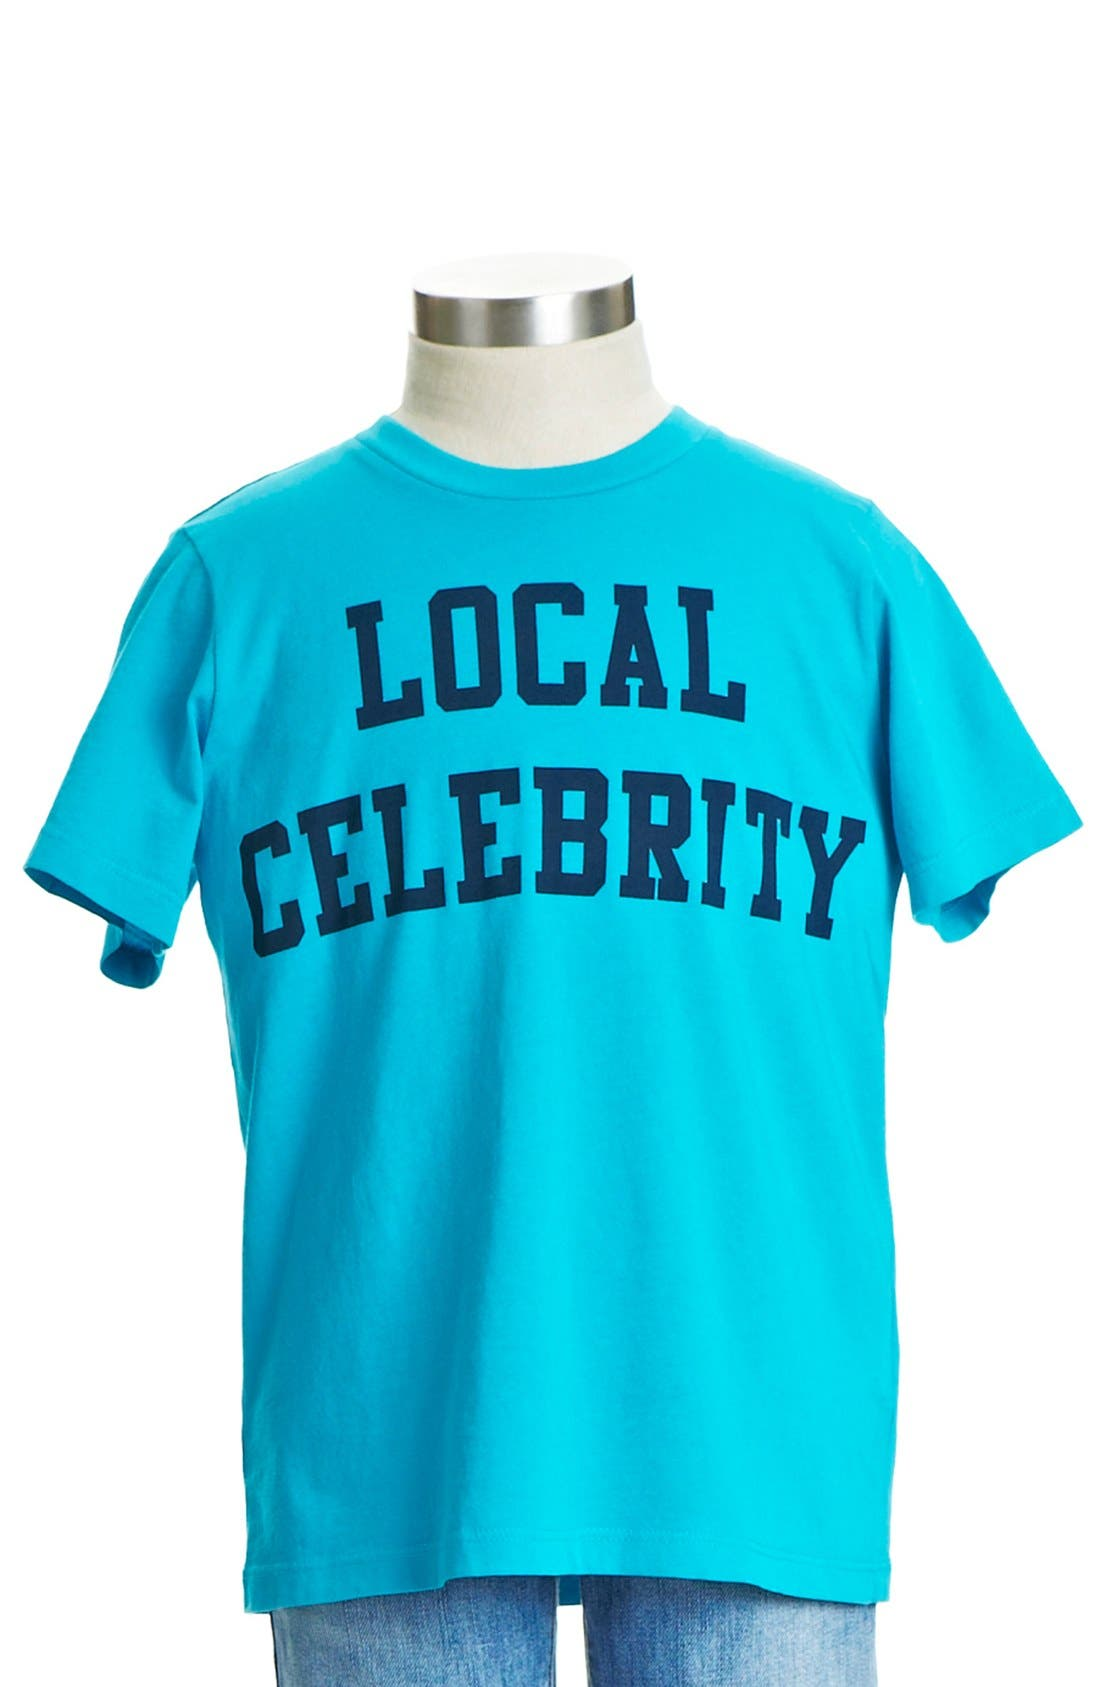 Main Image - Peek 'Local Celebrity' T-Shirt (Toddler Boys, Little Boys & Big Boys)